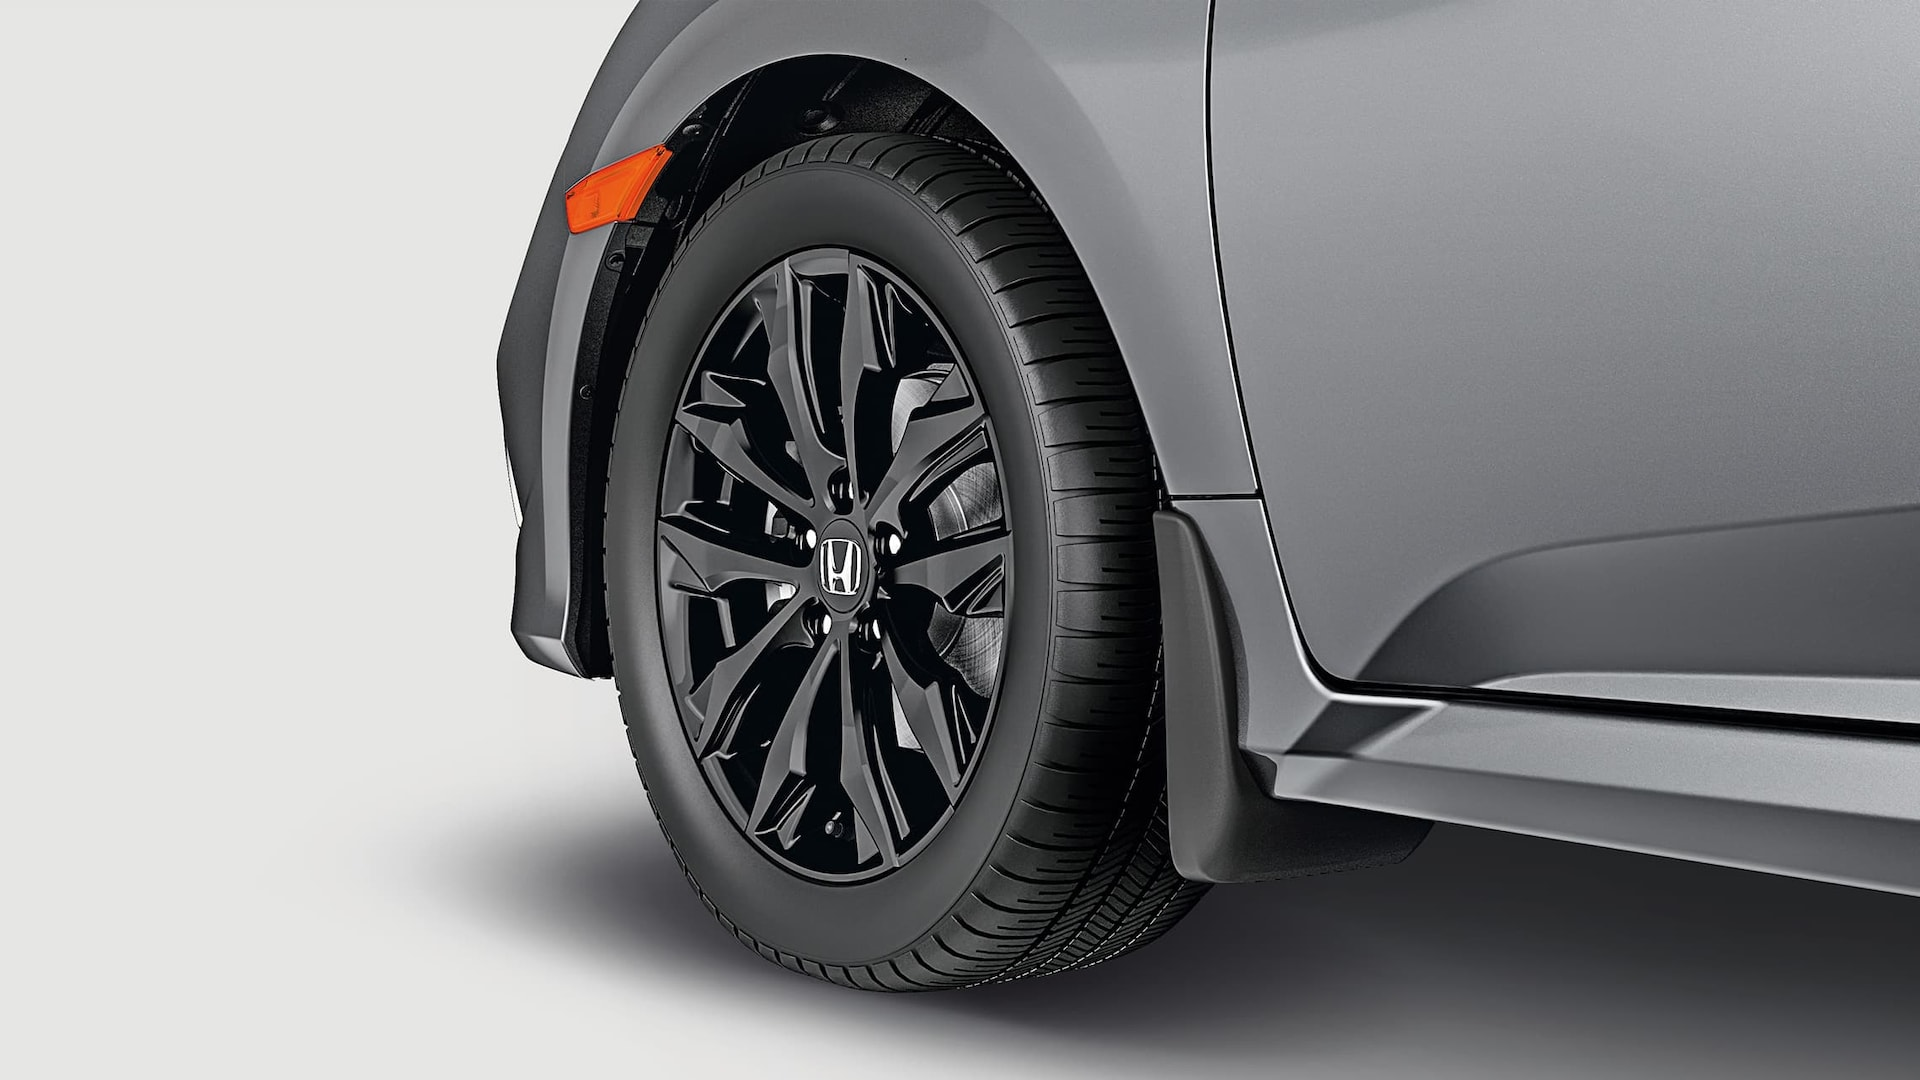 17-inch black alloy wheel detail on the 2020 Honda Civic Sedan in Modern Steel Metallic.